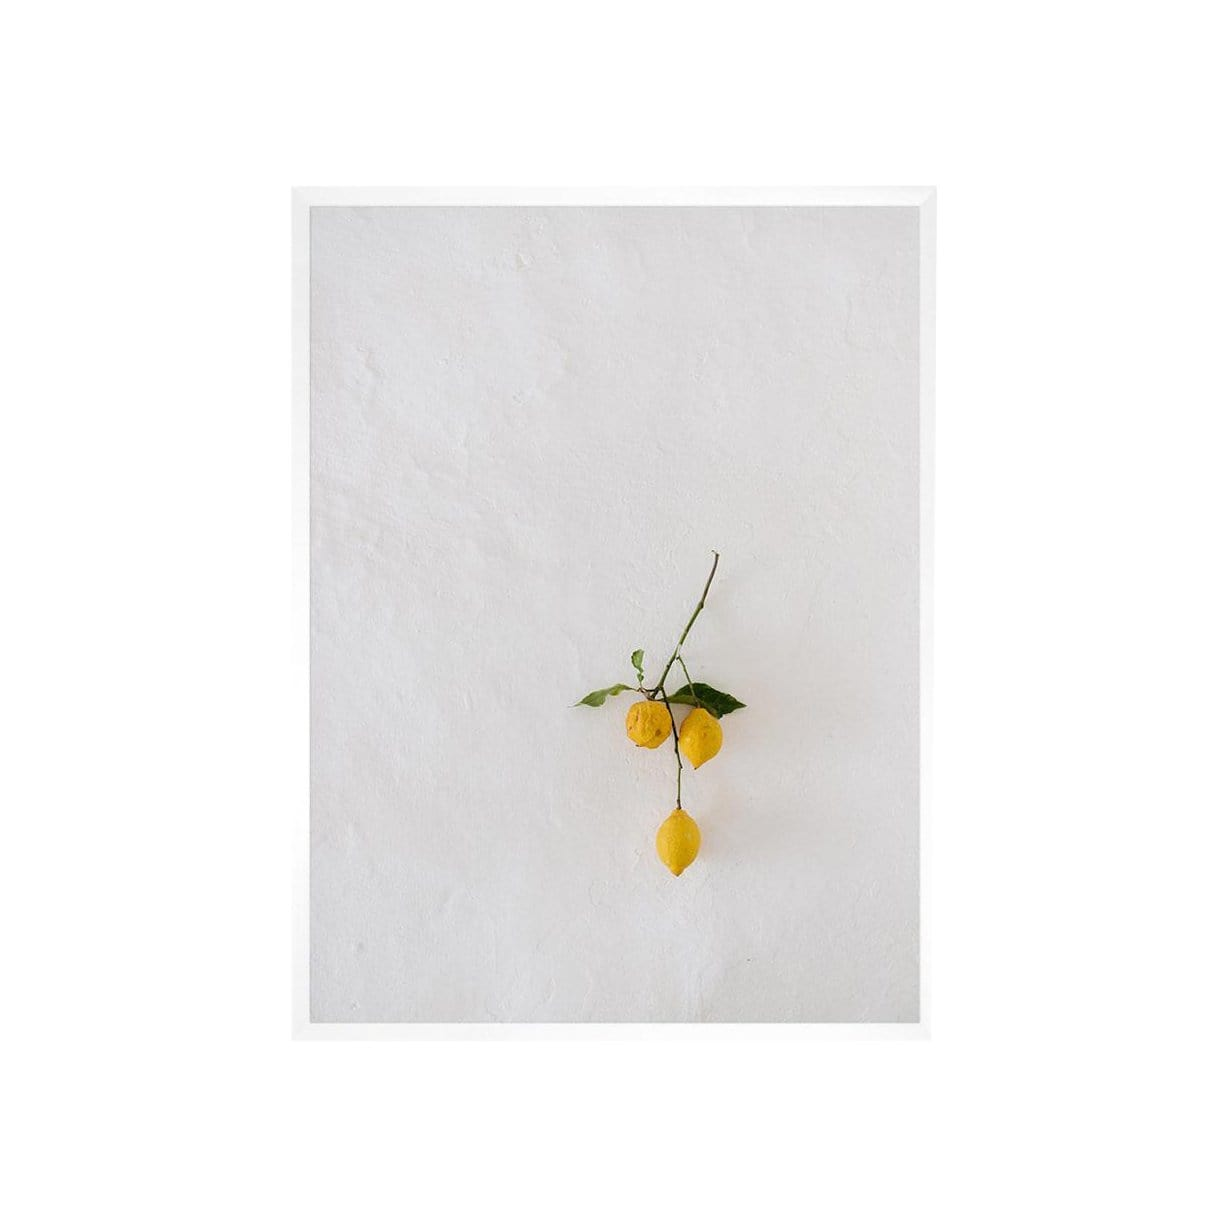 Carley Rudd Photography + Prints 11 x 14 / unframed Mallorca Lemon Print